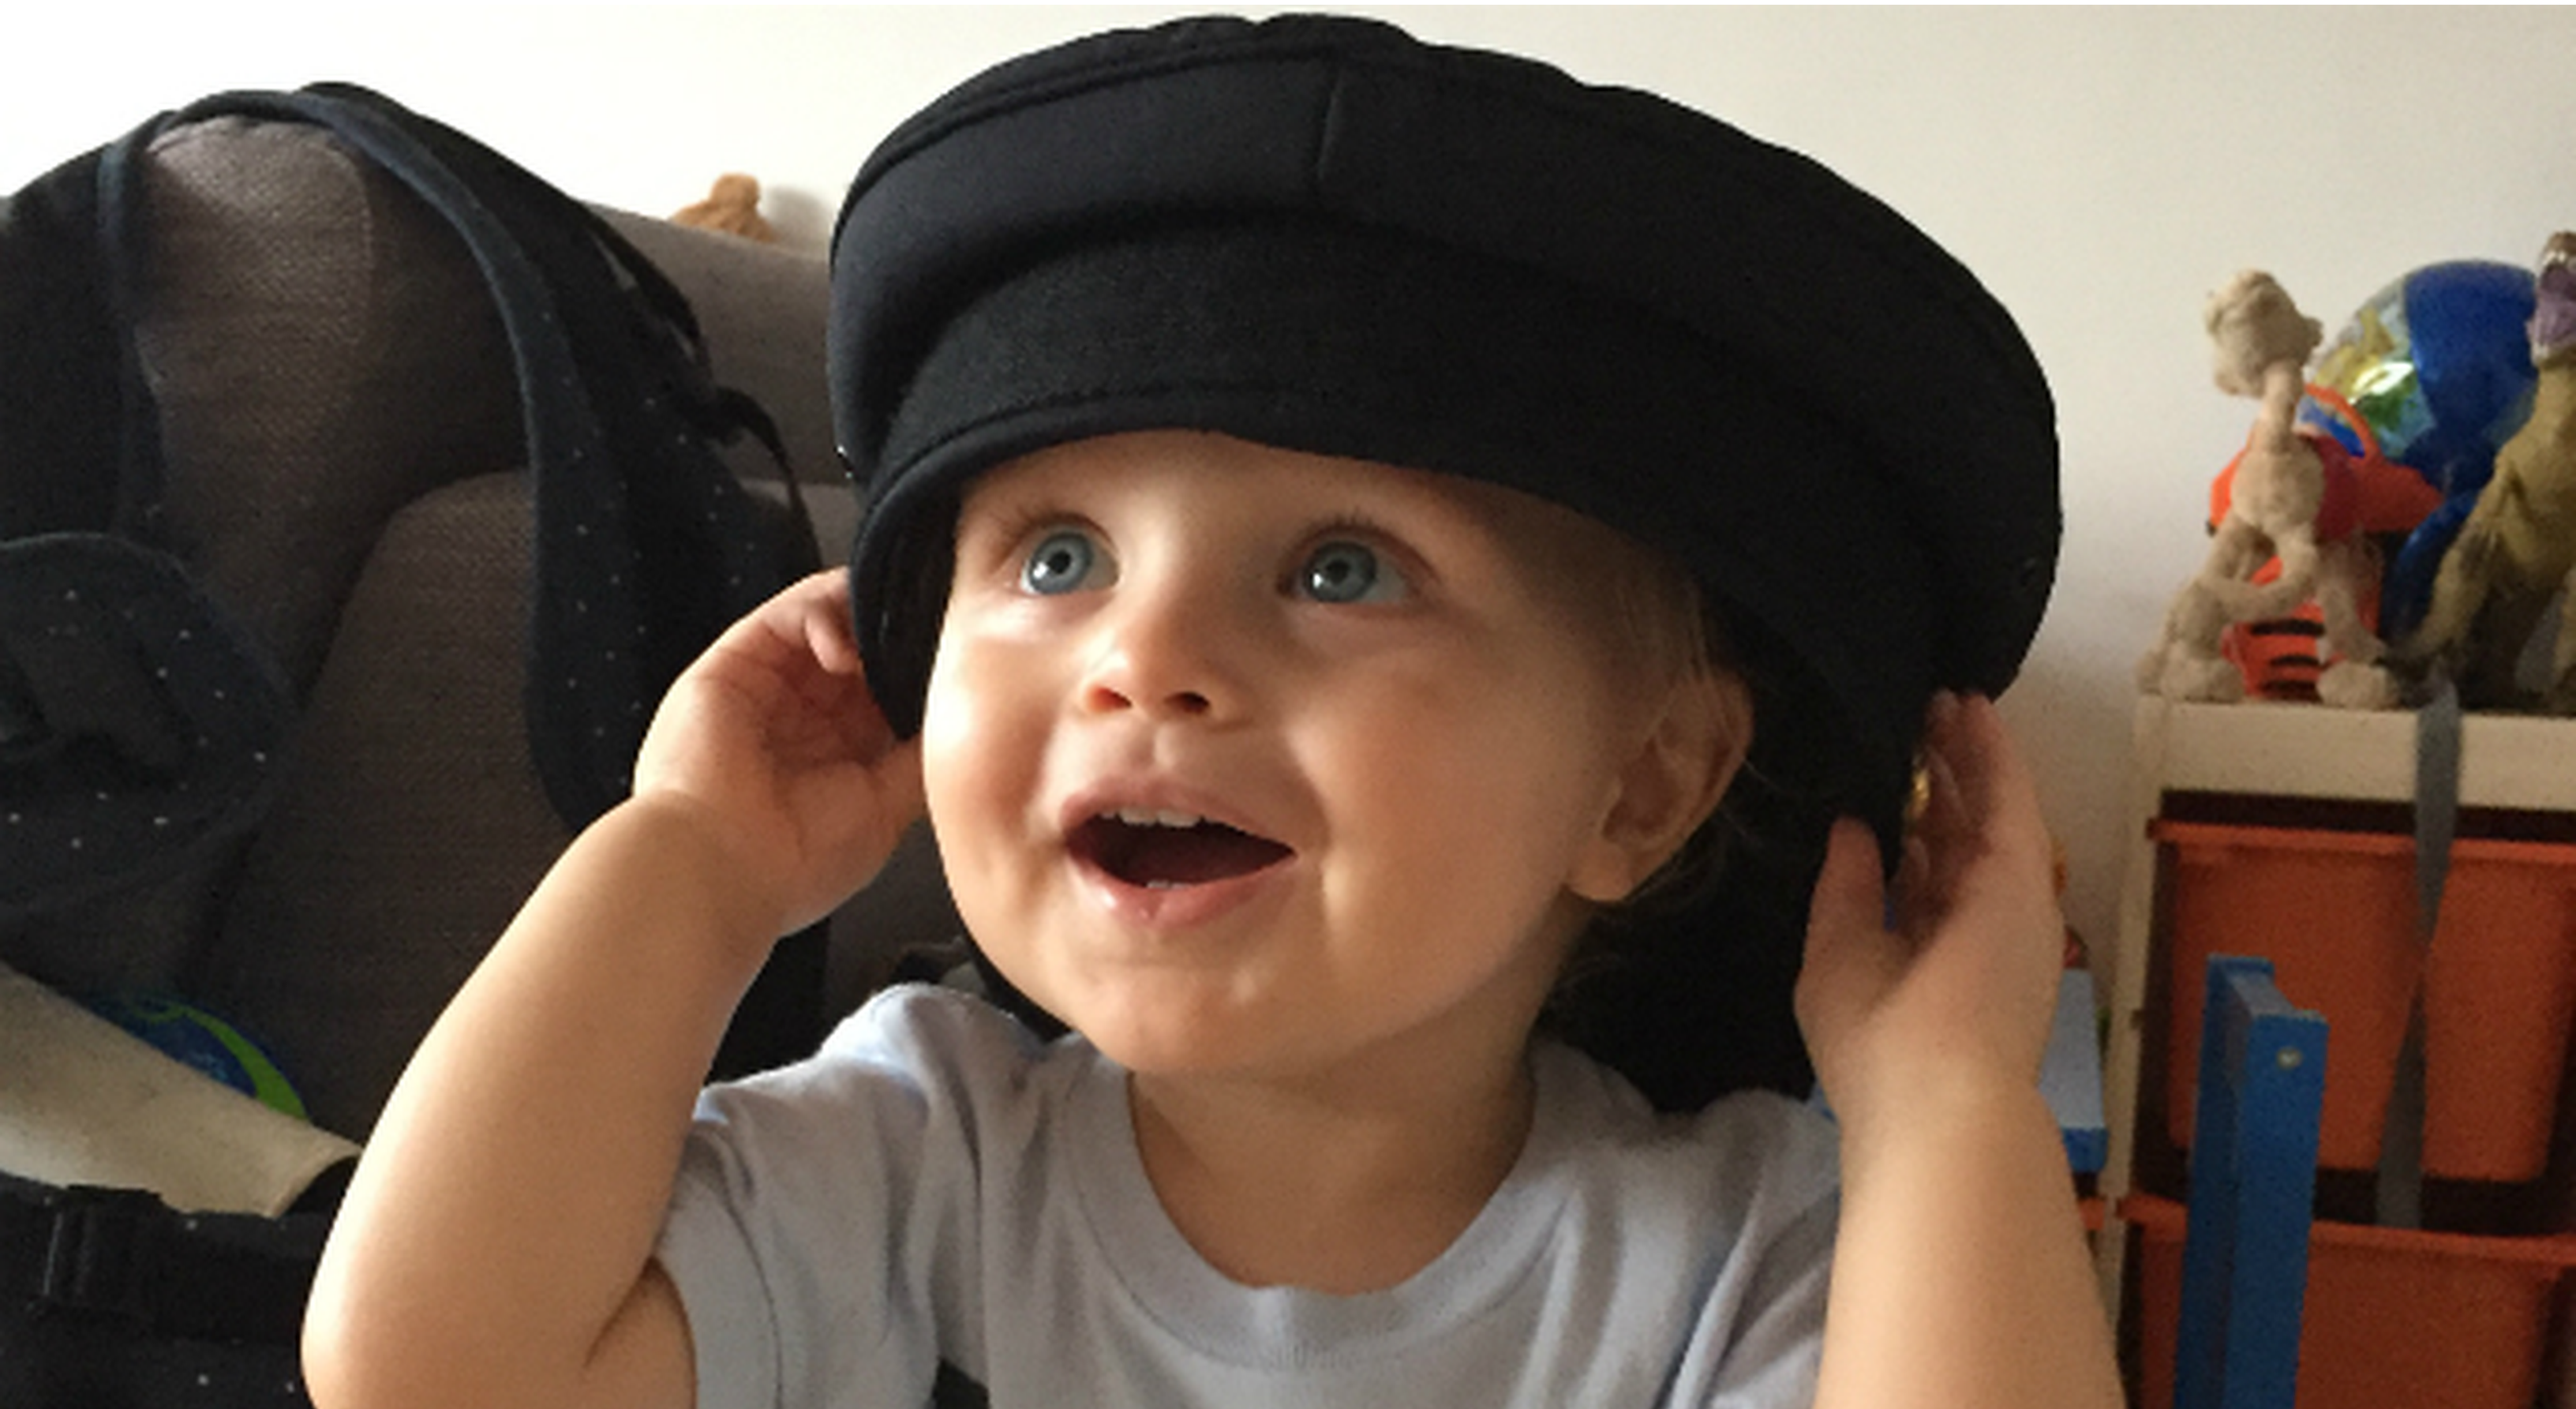 Toddler wears pilot's hat